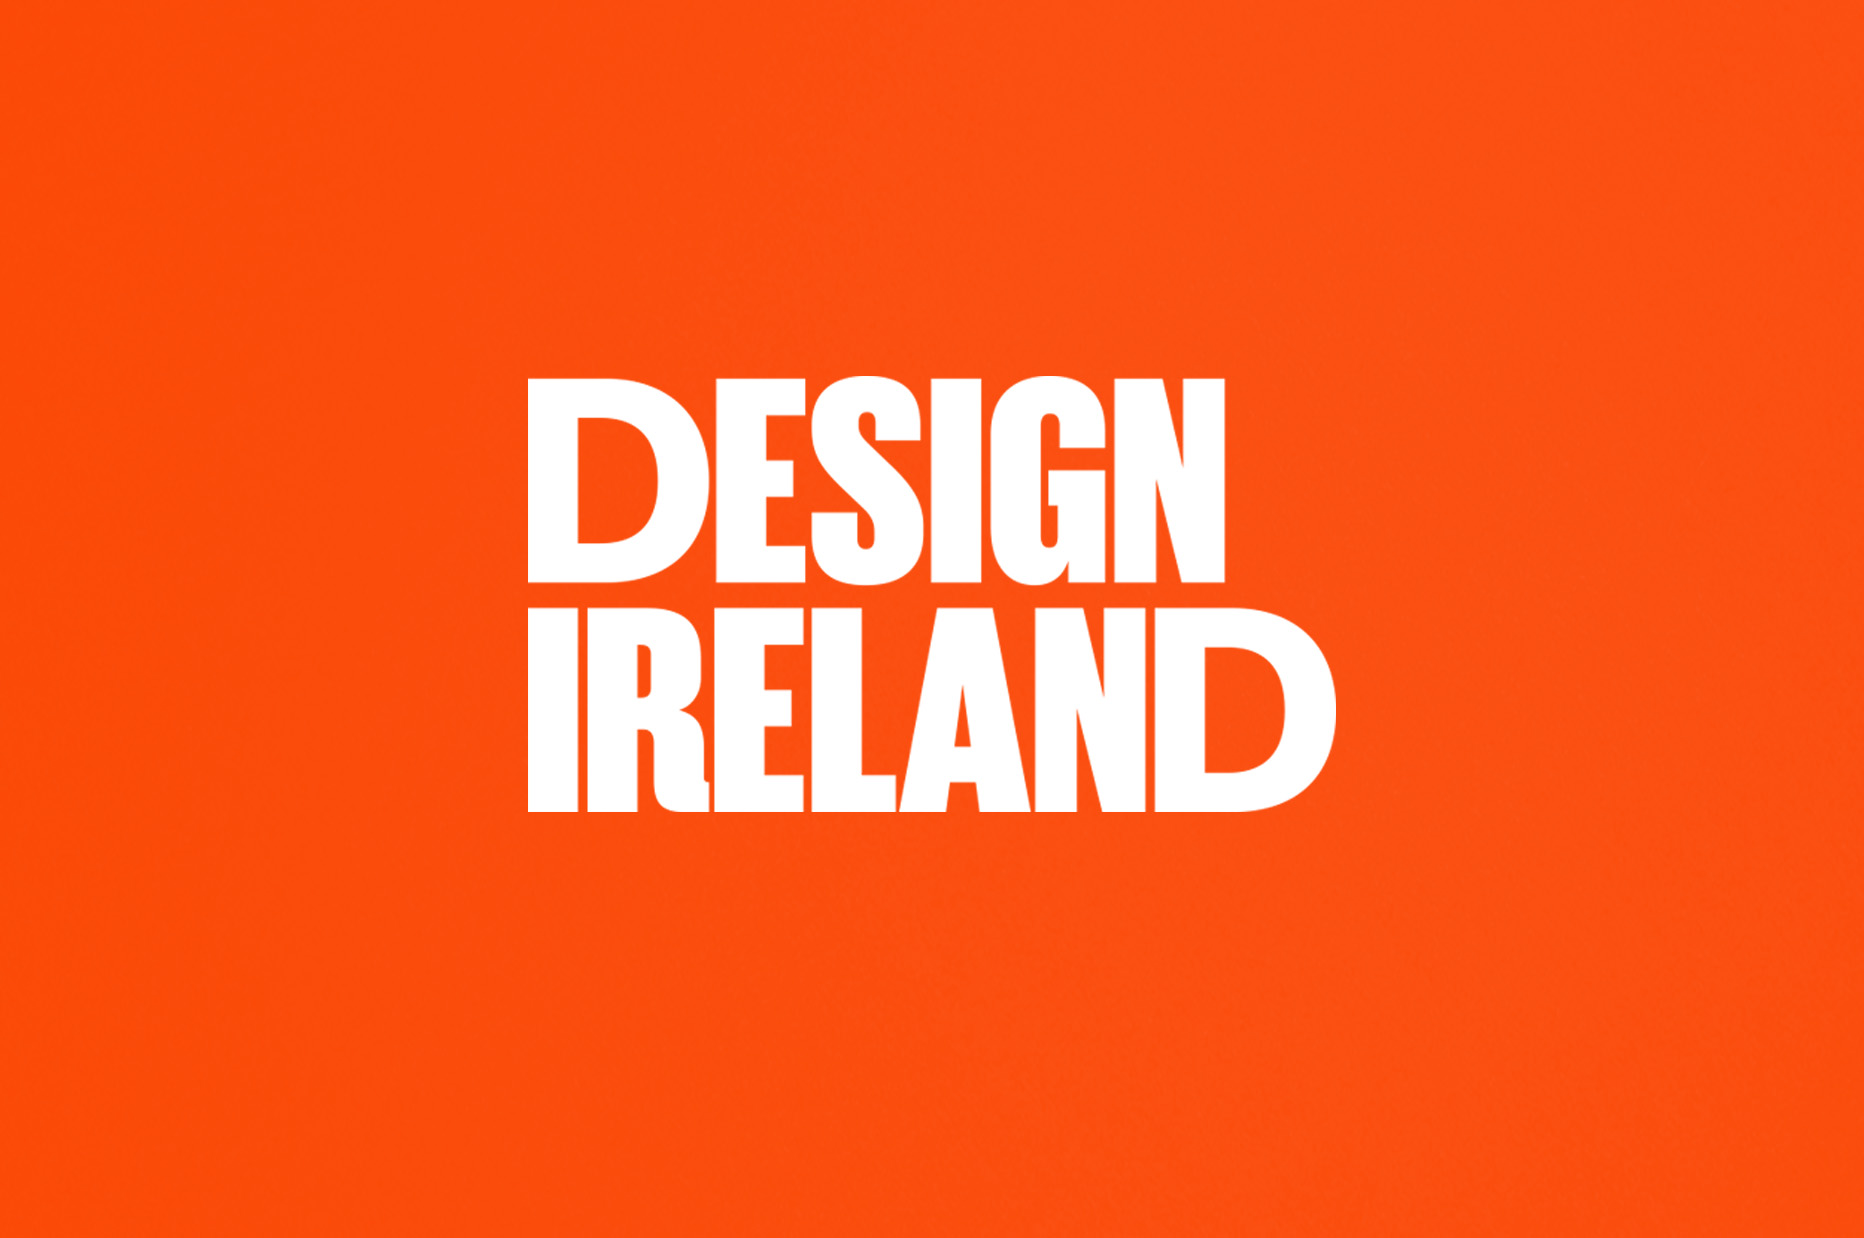 TogtherWeCreate_DesignIreland_Logo.jpg